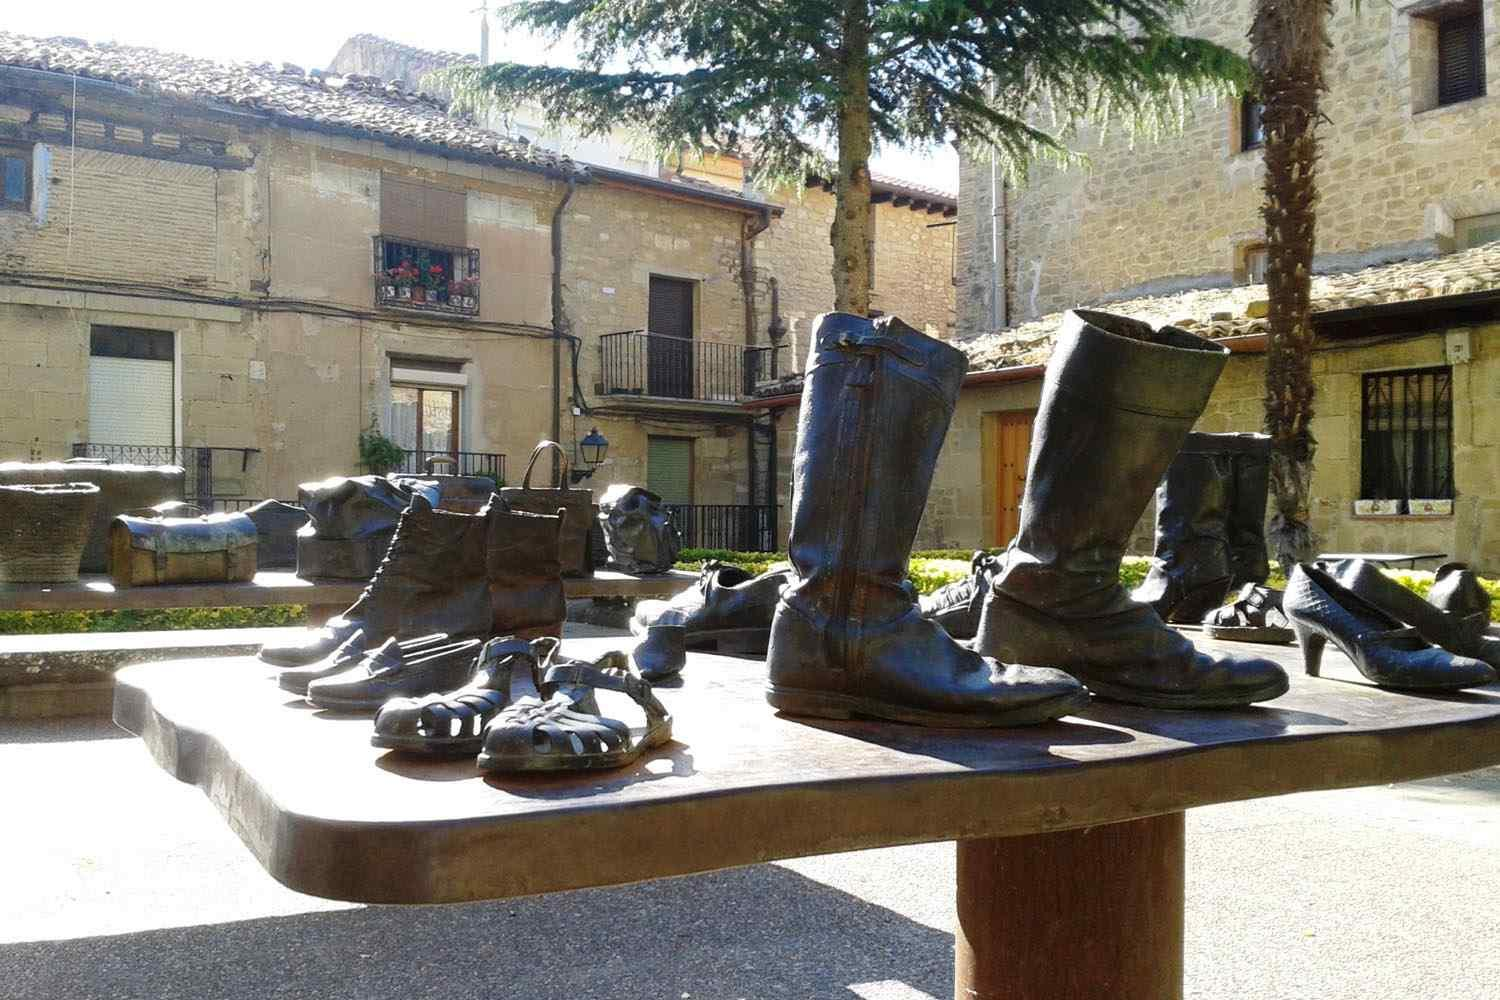 walking tour of Rioja. Winery tour by foot